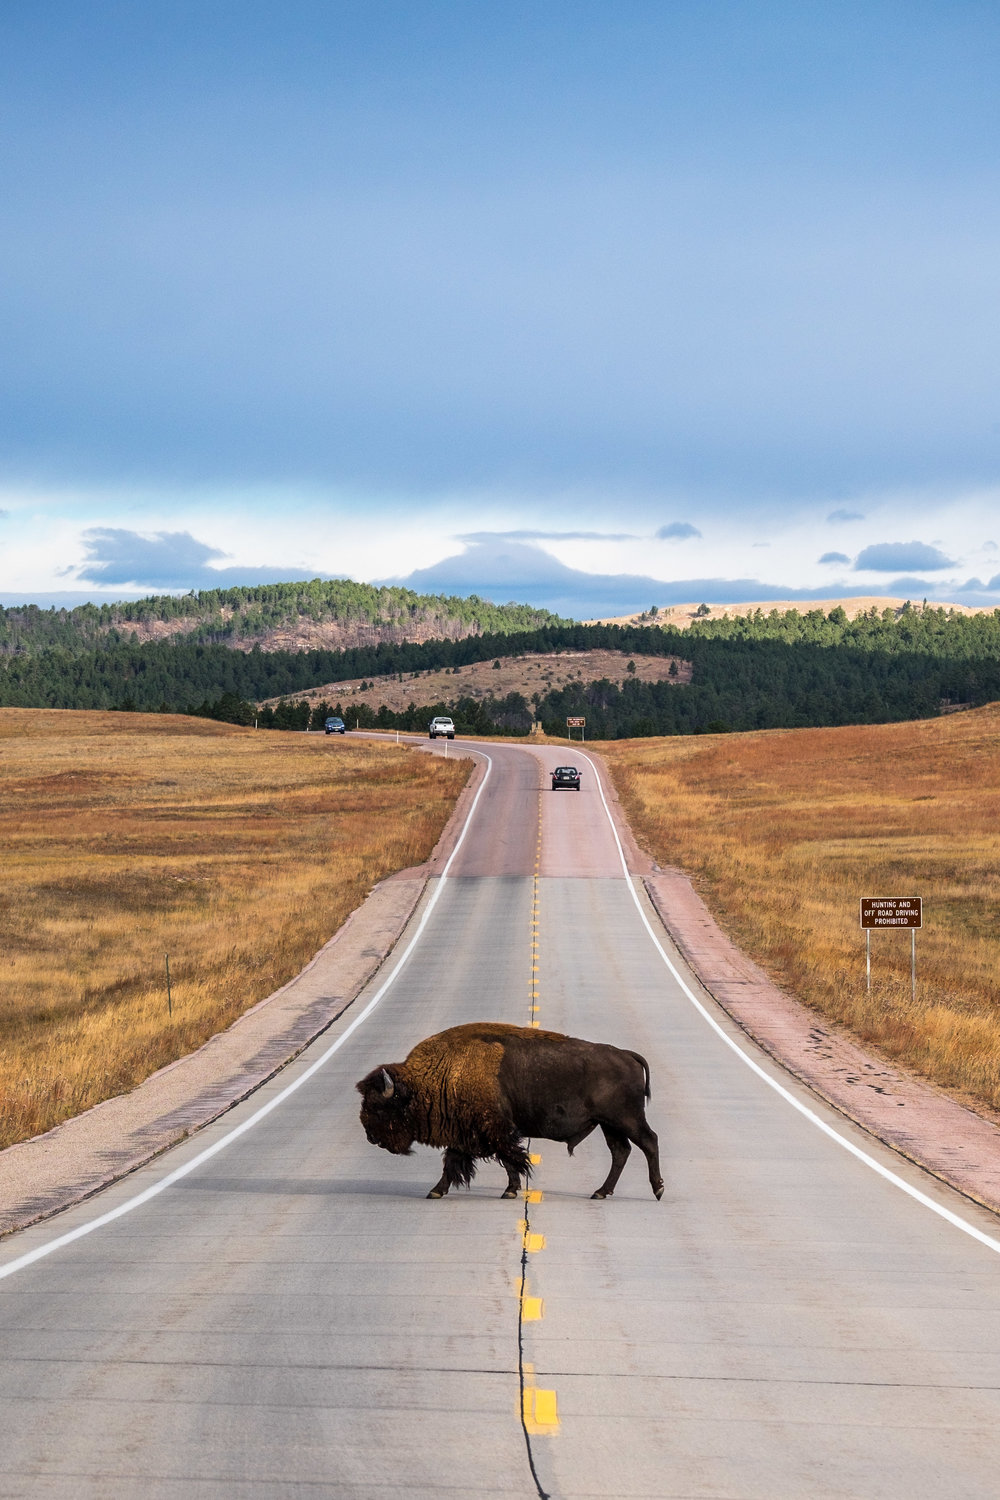 And they rule the road in South Dakota's Wind Cave too!